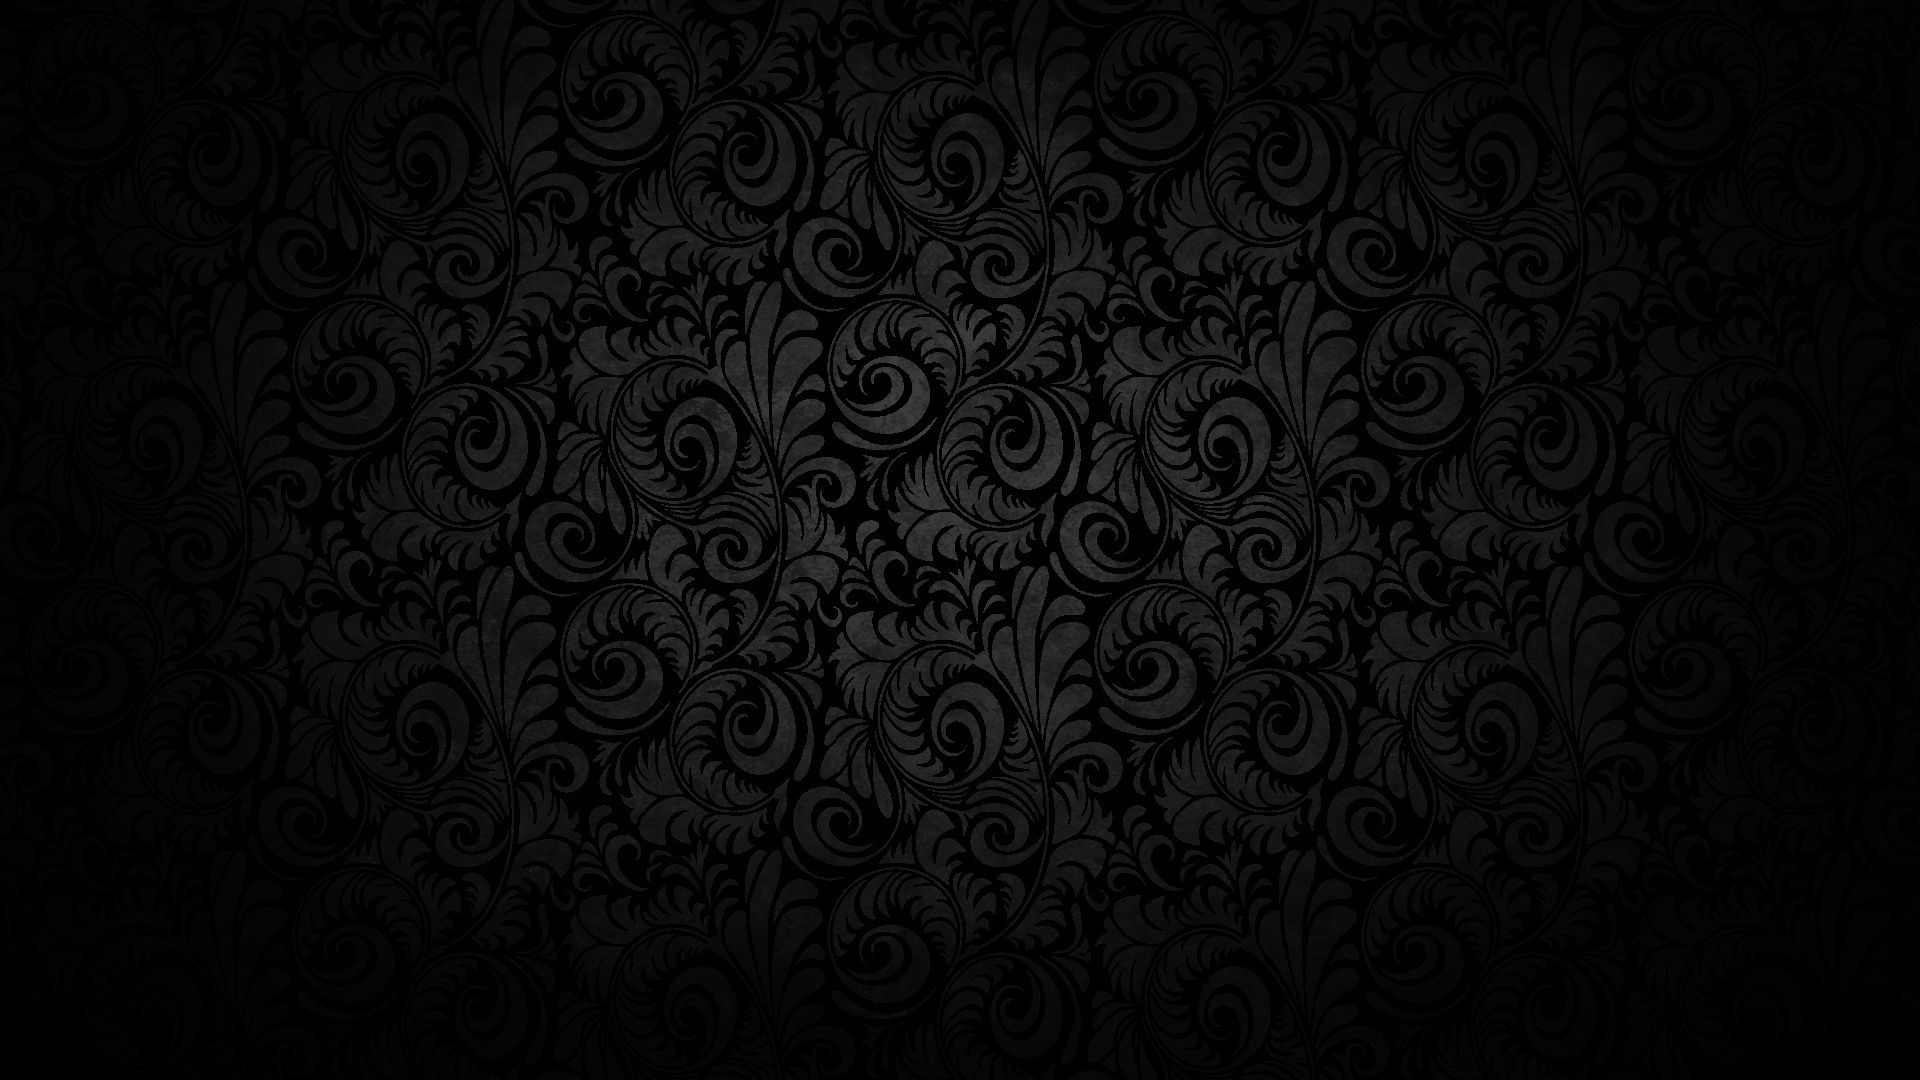 1080p Wallpapers of Abstract Black Swirl Wallpaper Background 1920x1080